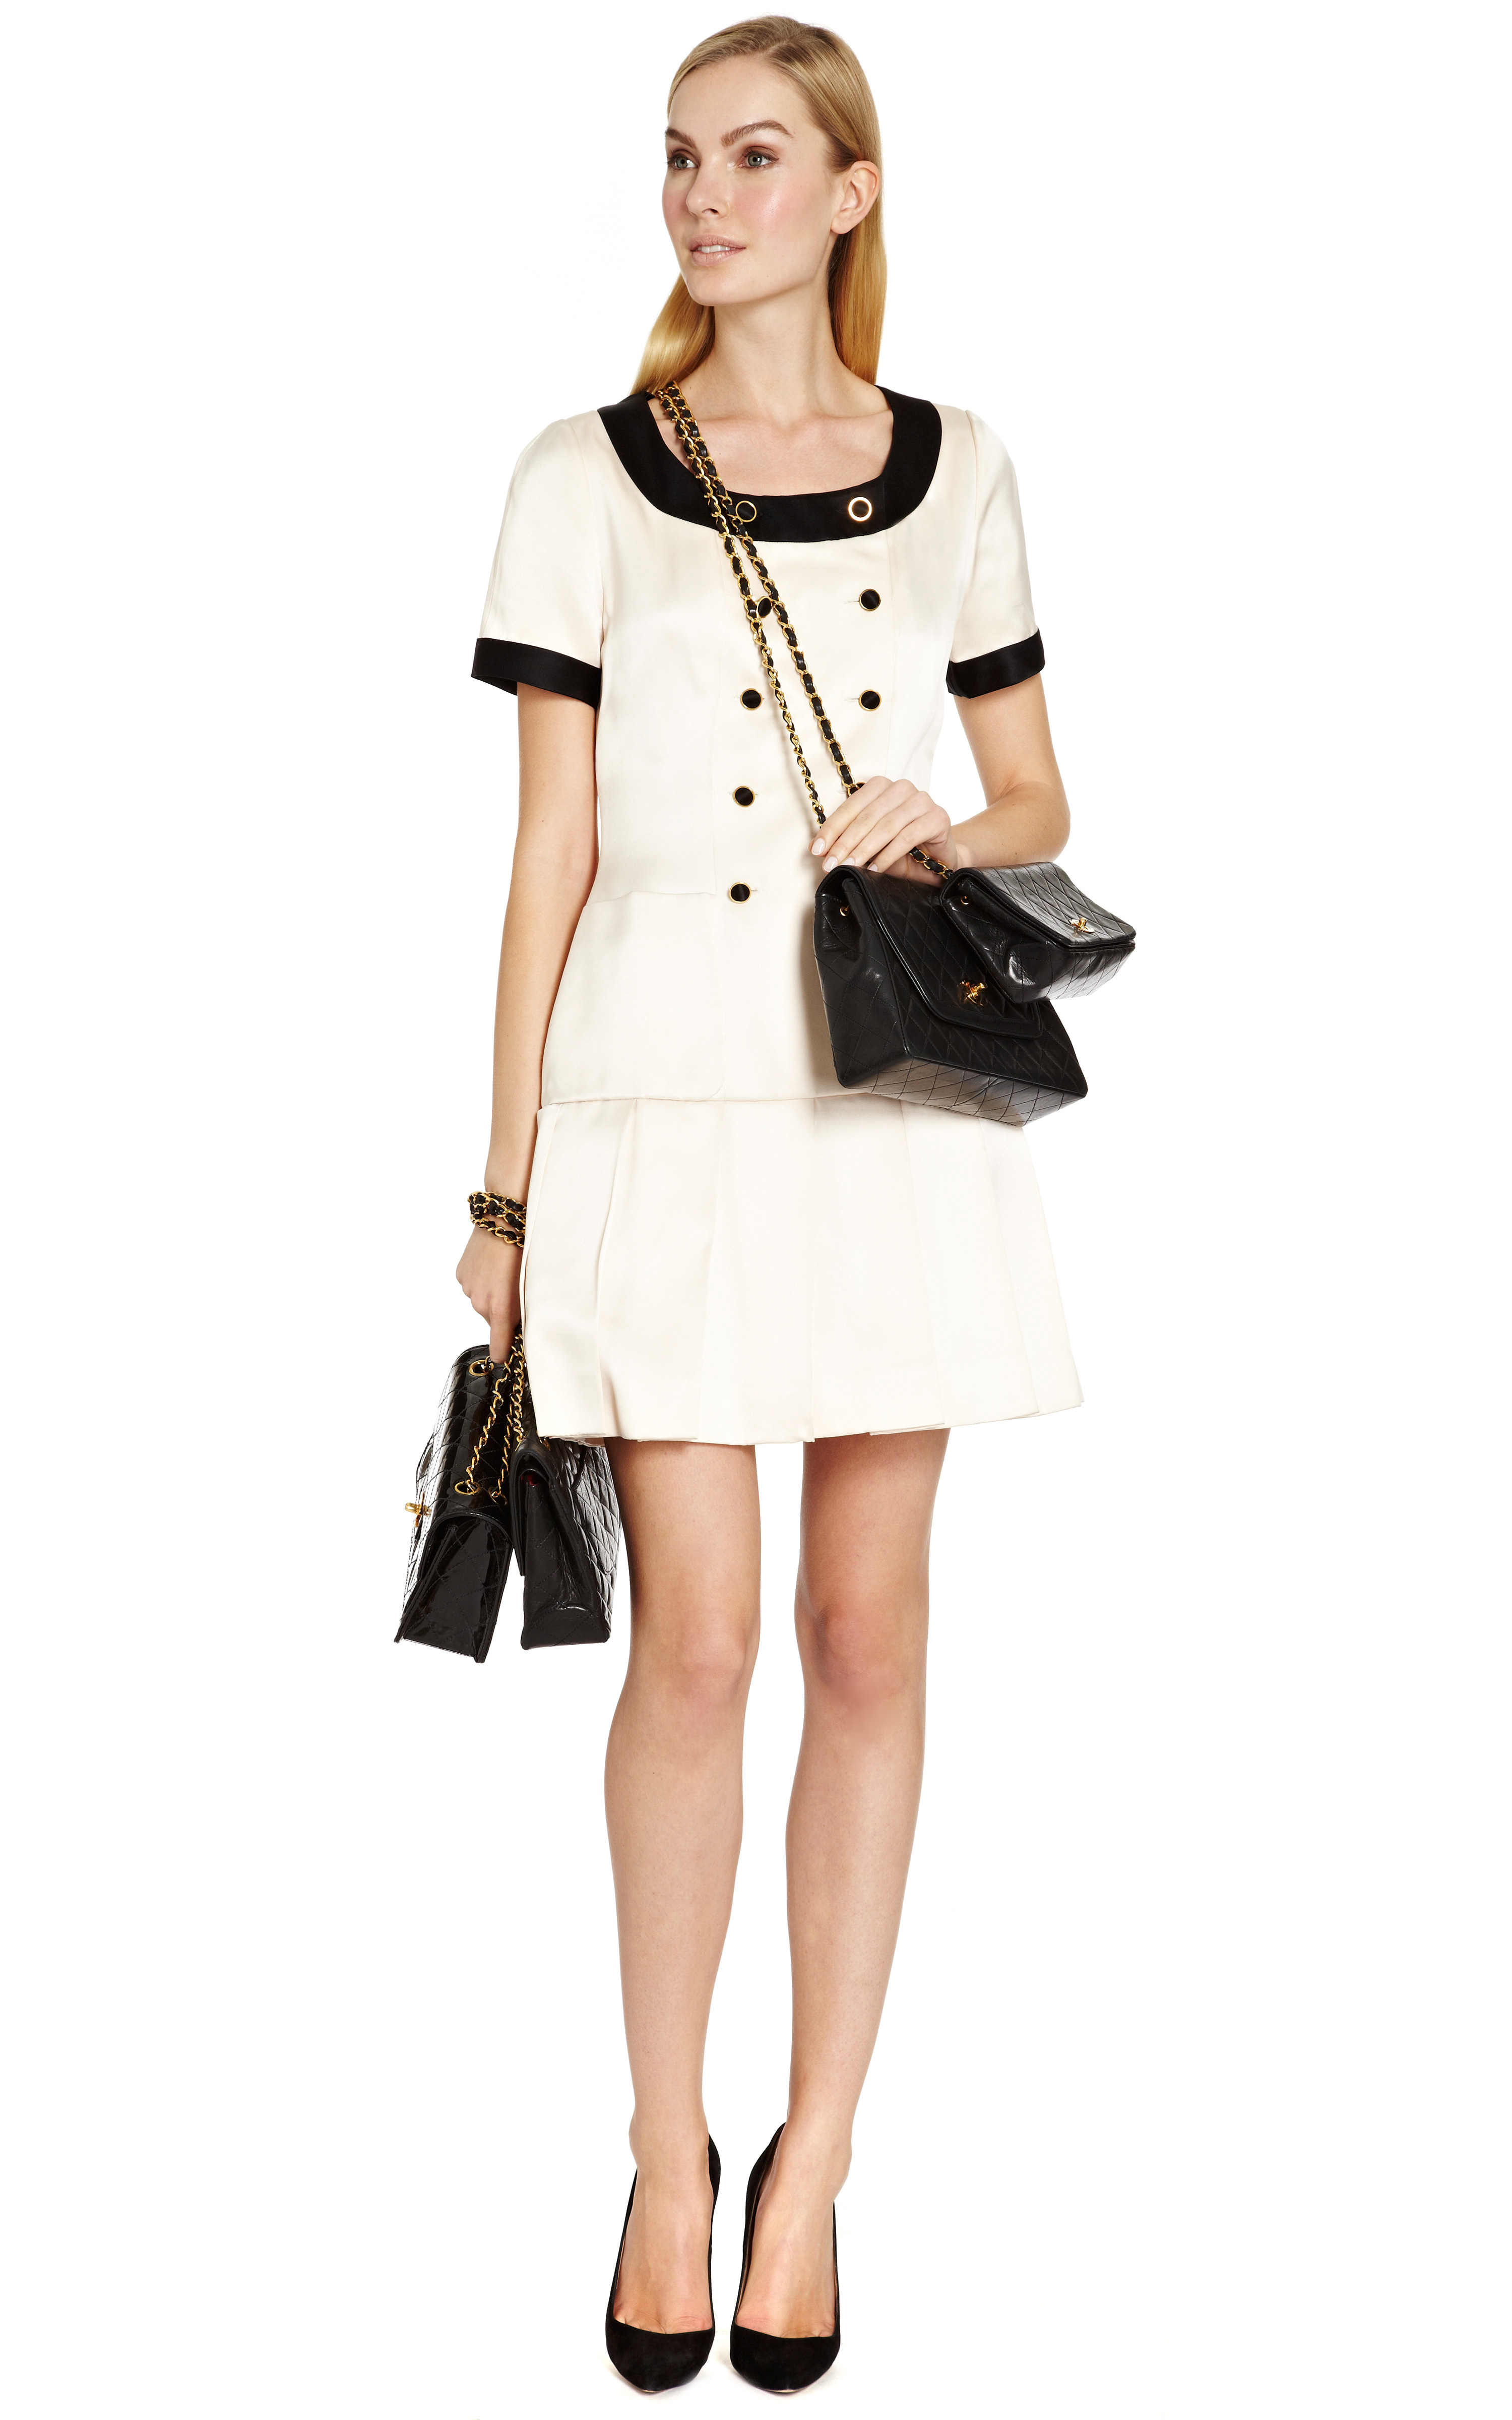 Chanel Chanel White Satin Dress With Black Trim From What